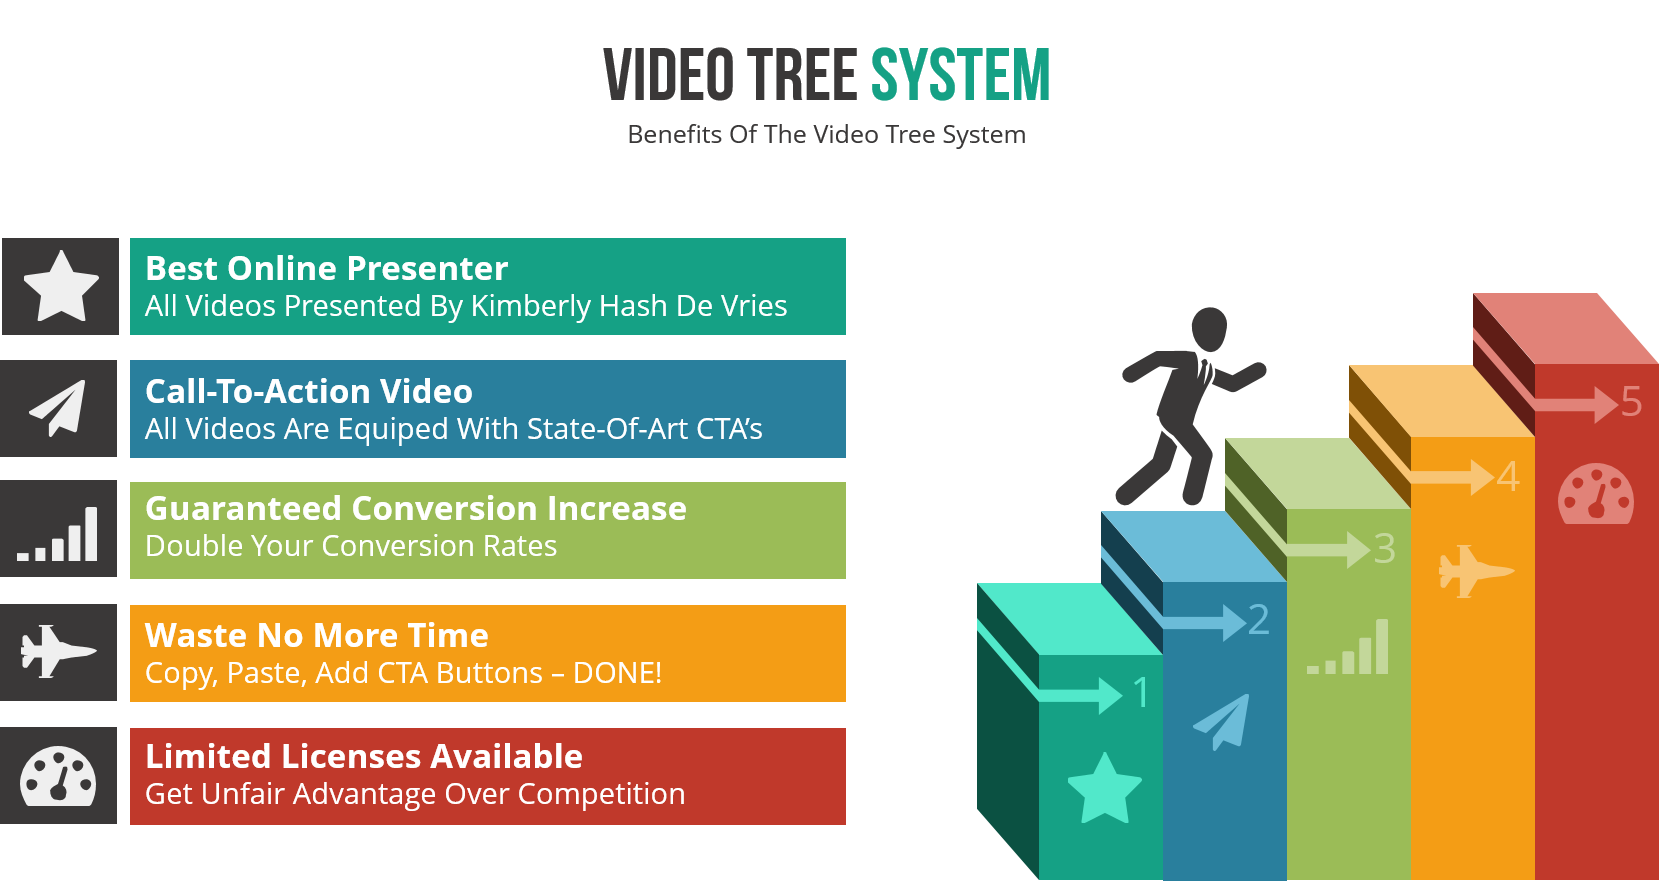 Videotreesystem anyone selling a product or service online can create a video and upload it to youtube ccuart Images